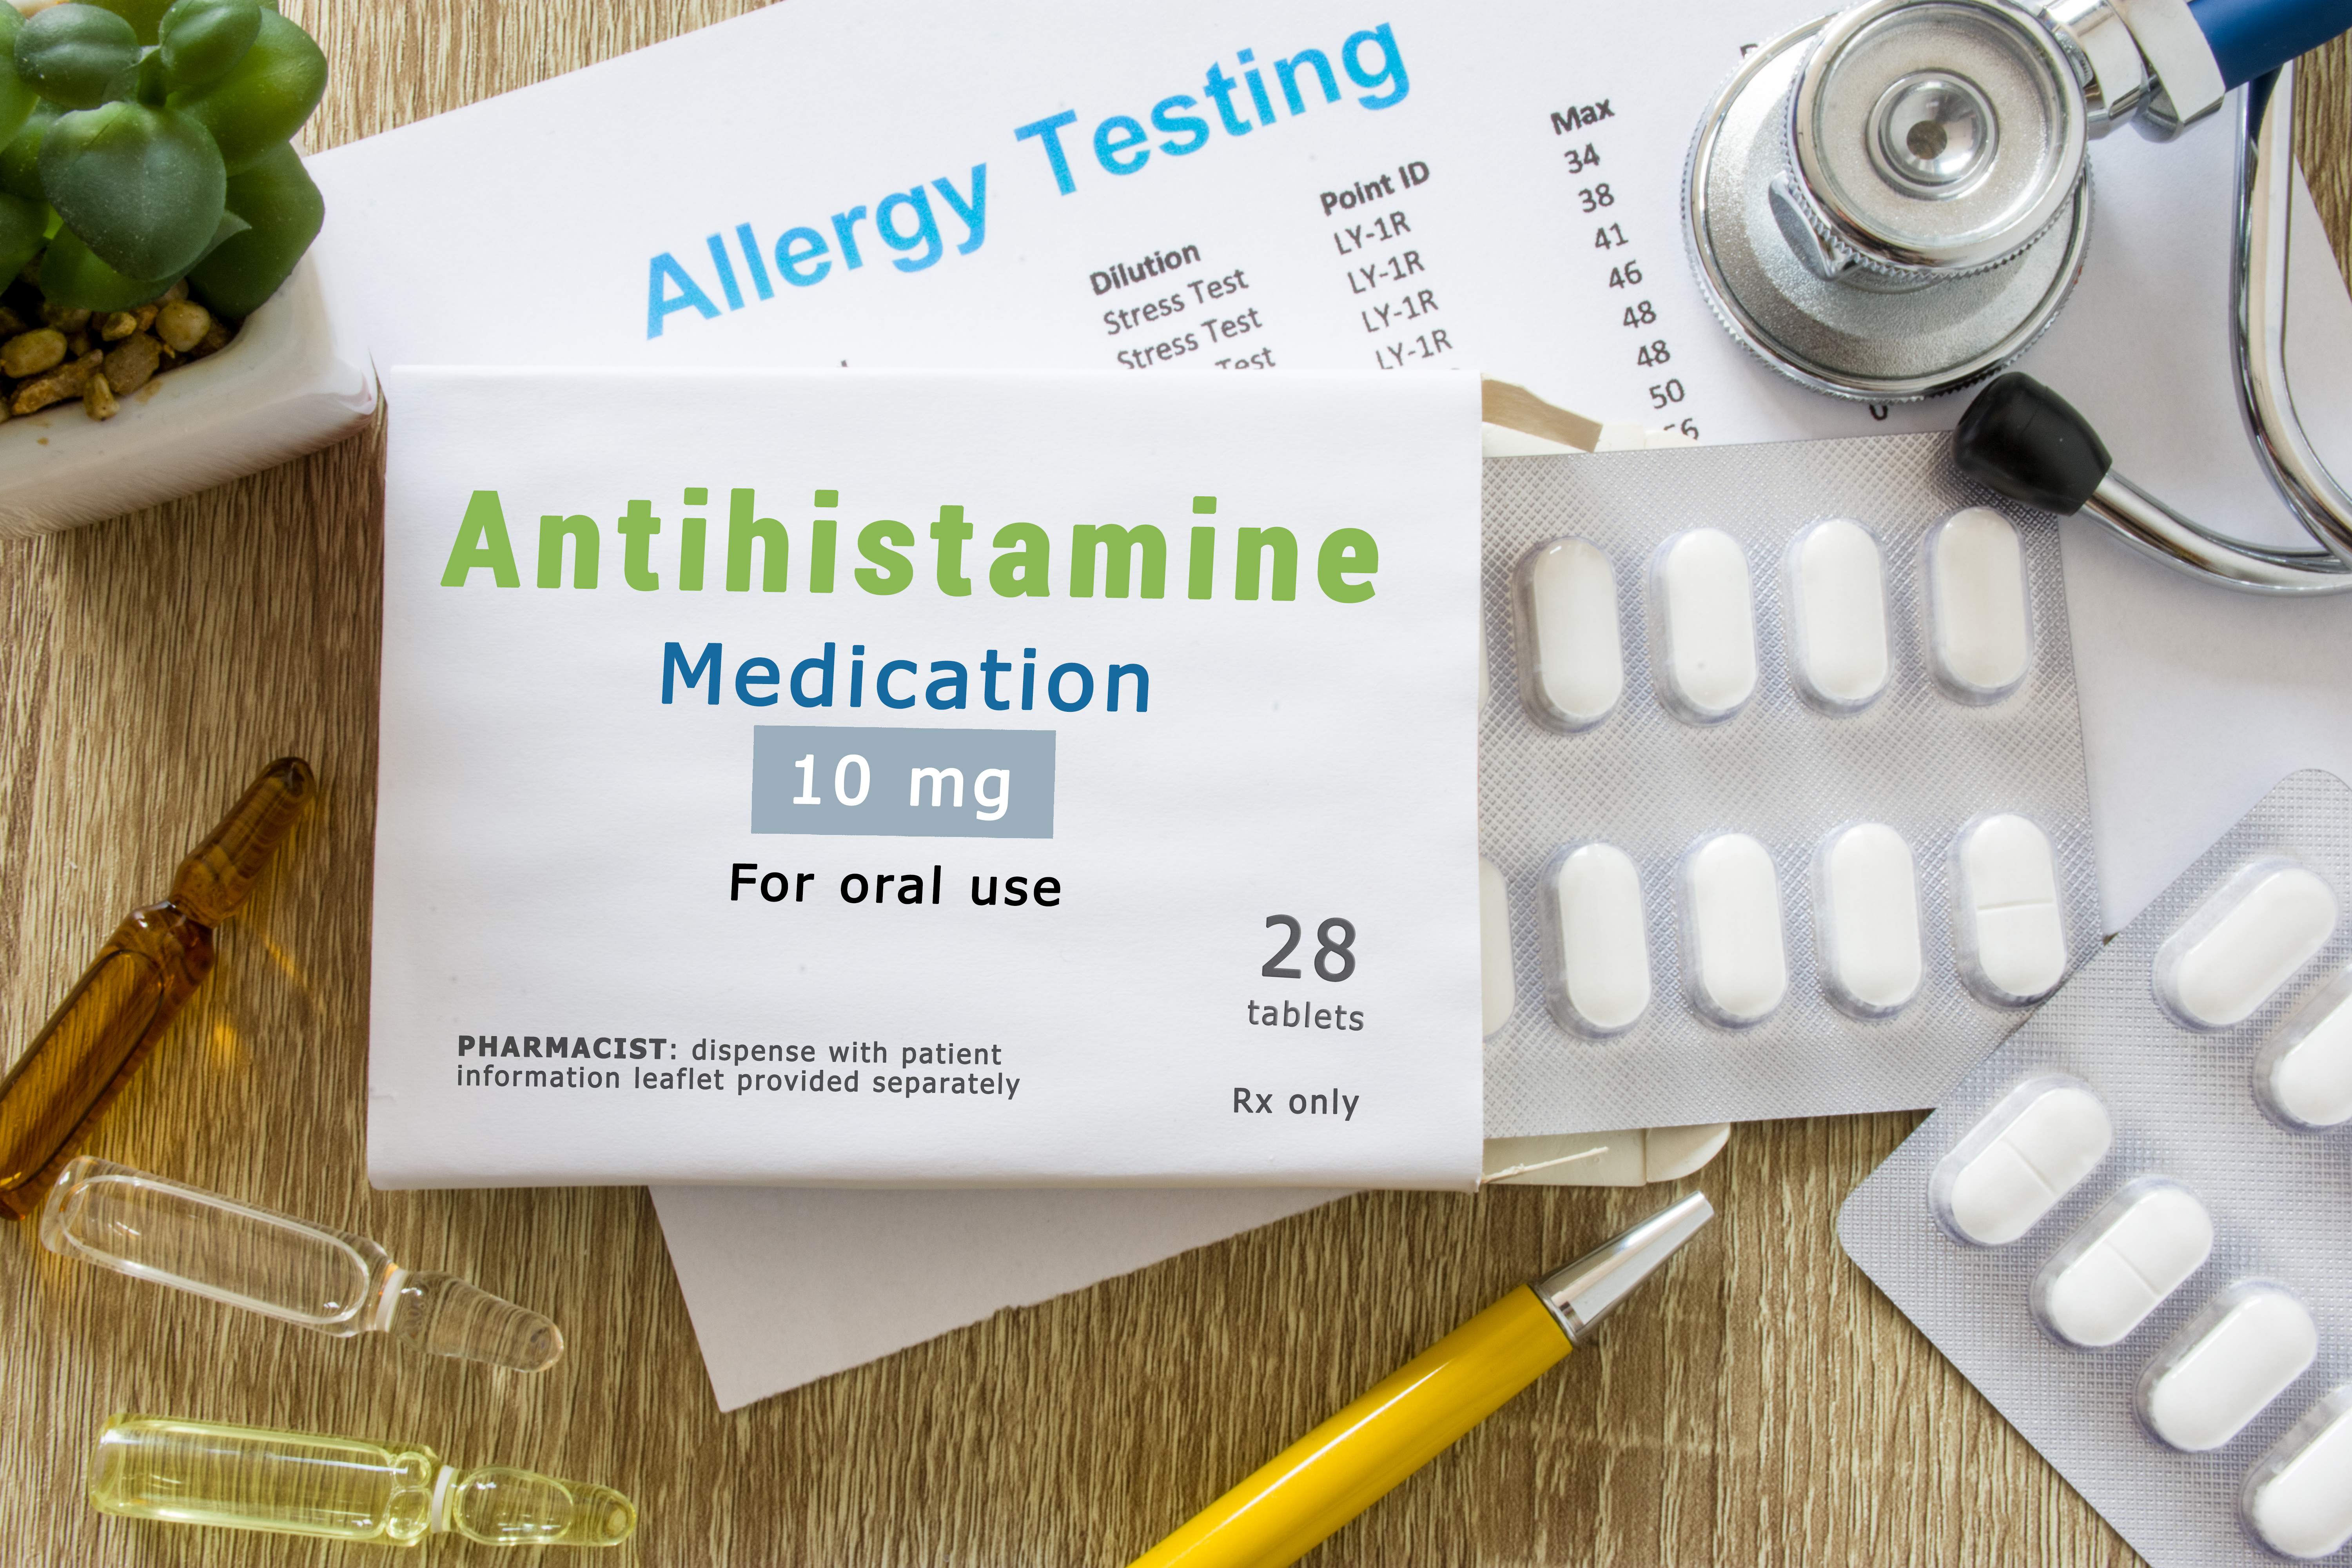 Antihistamines: What's available and what are the side effects?